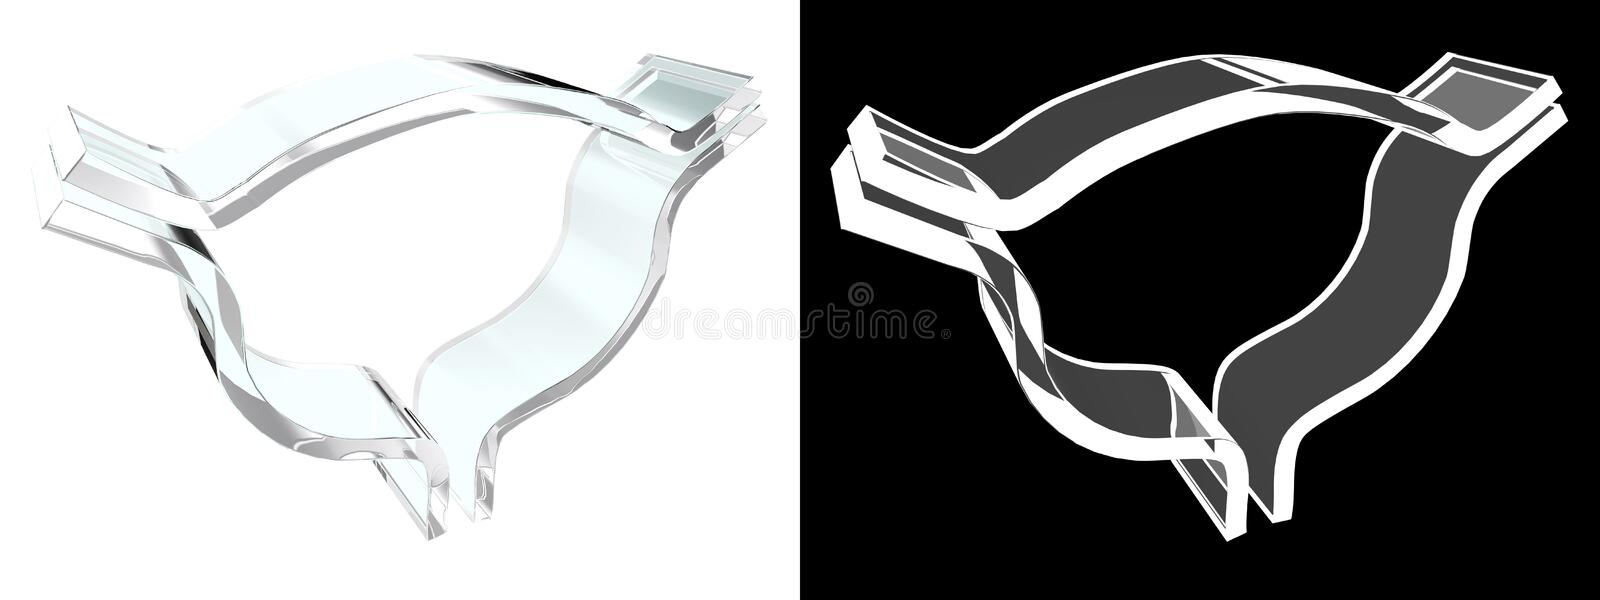 Glass bladder symbol with white background stock photography